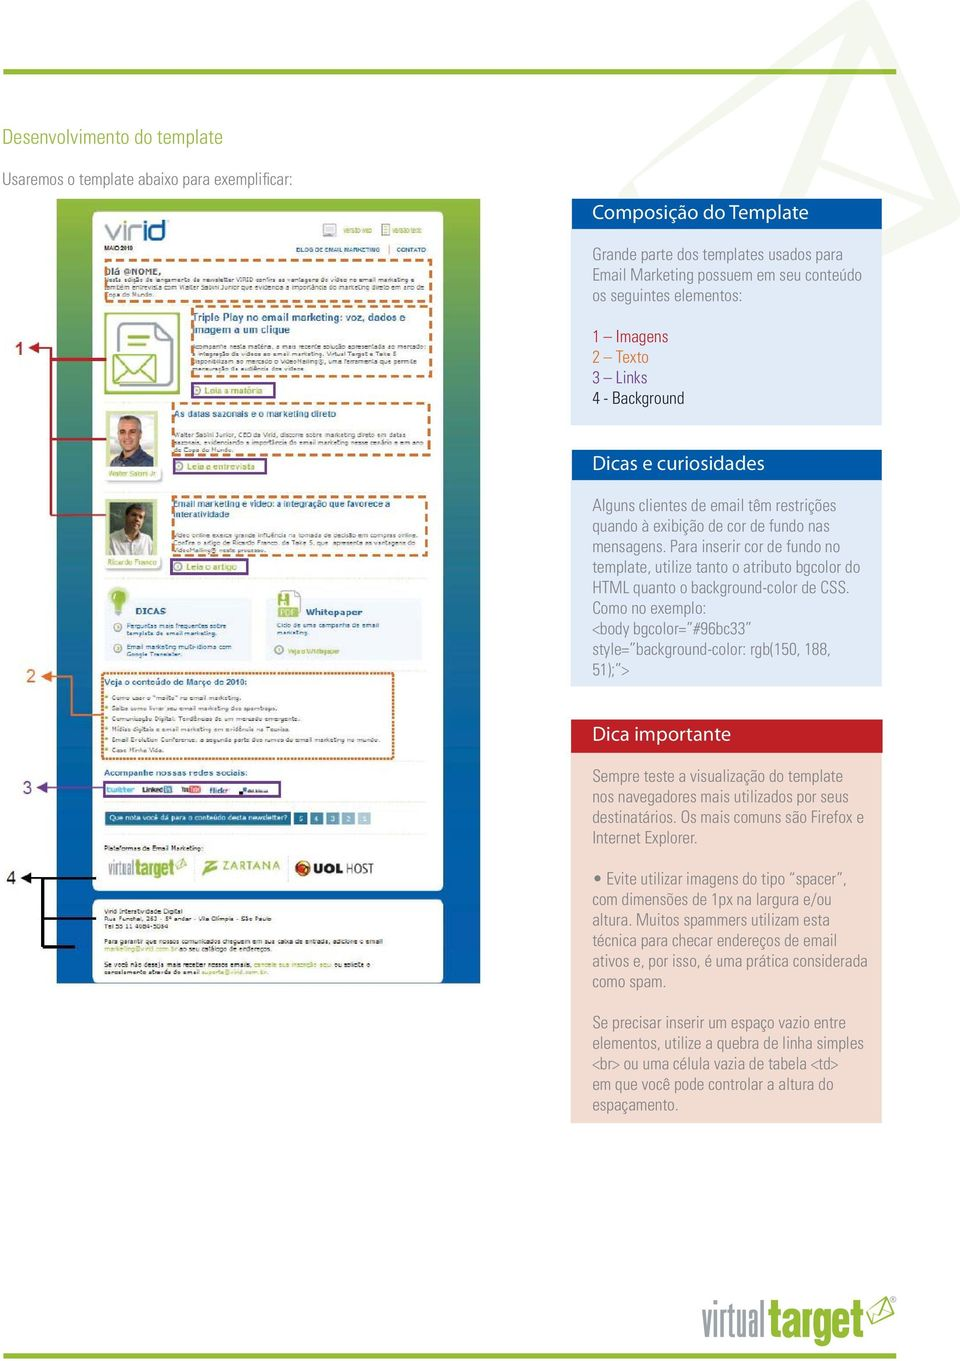 Para inserir cor de fundo no template, utilize tanto o atributo bgcolor do HTML quanto o background-color de CSS.